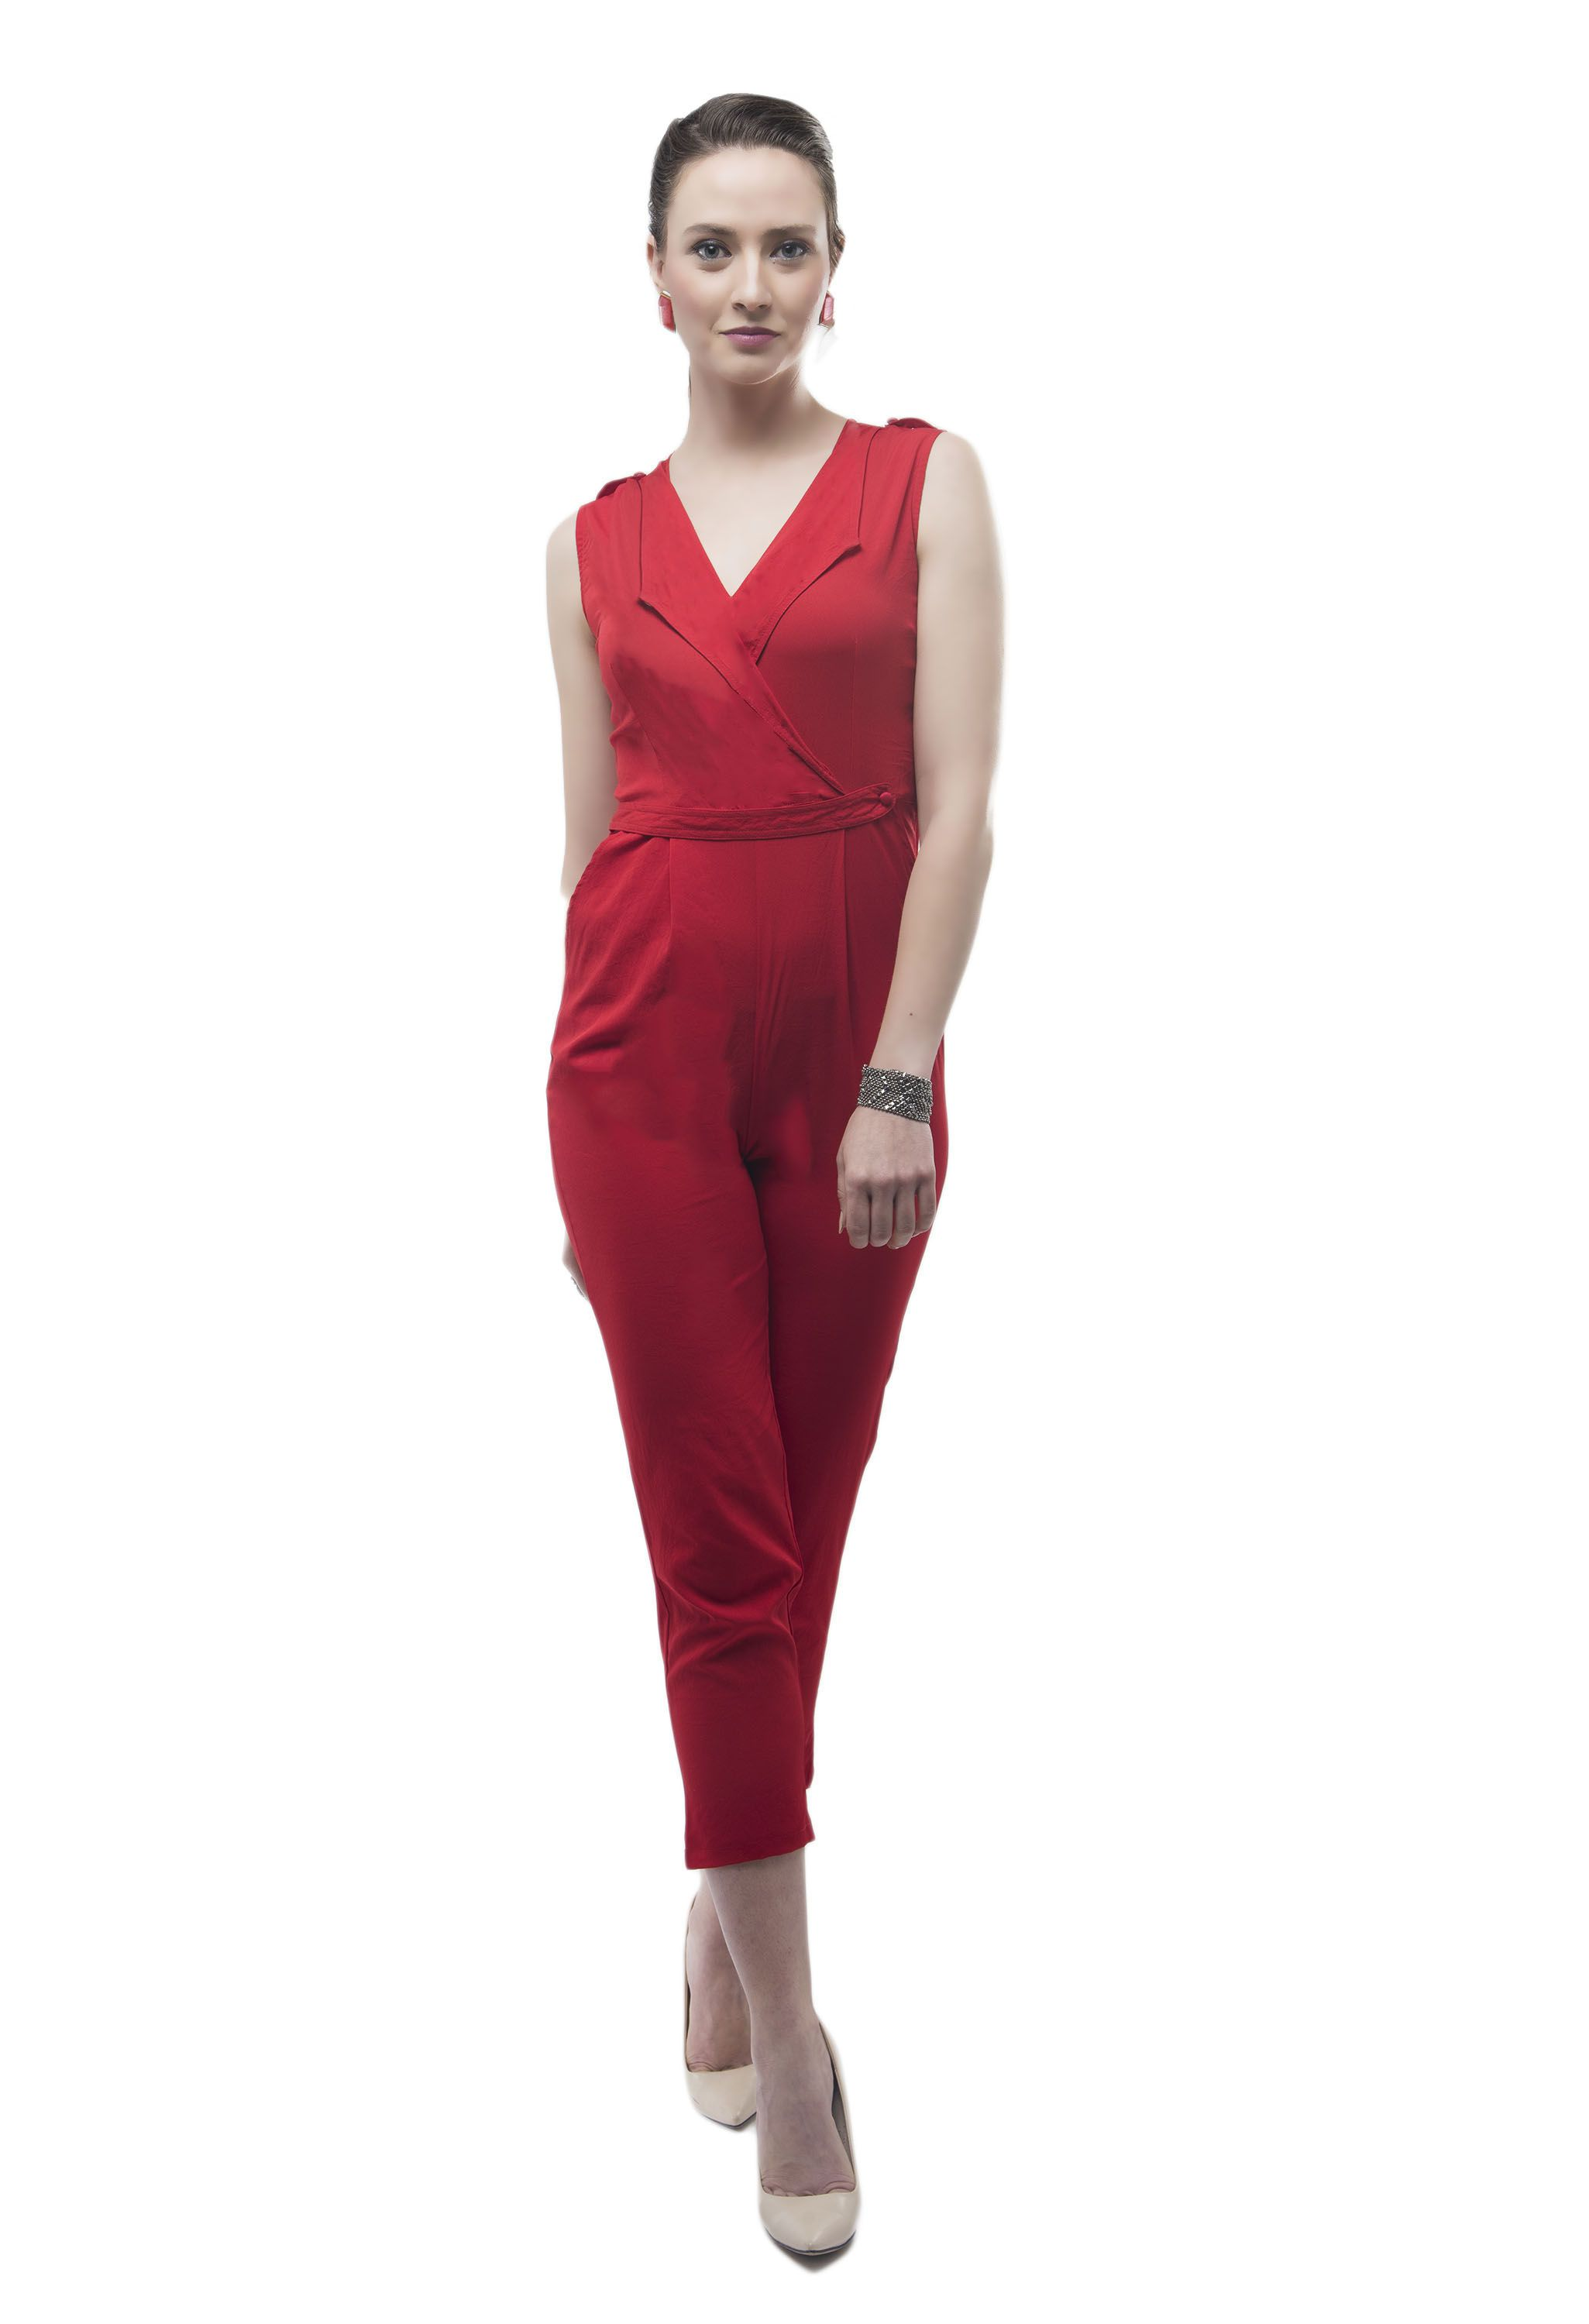 825ebba84a9 V M Poly Crepe Red Jumpsuits - Buy V M Poly Crepe Red Jumpsuits Online at  Best Prices in India on Snapdeal